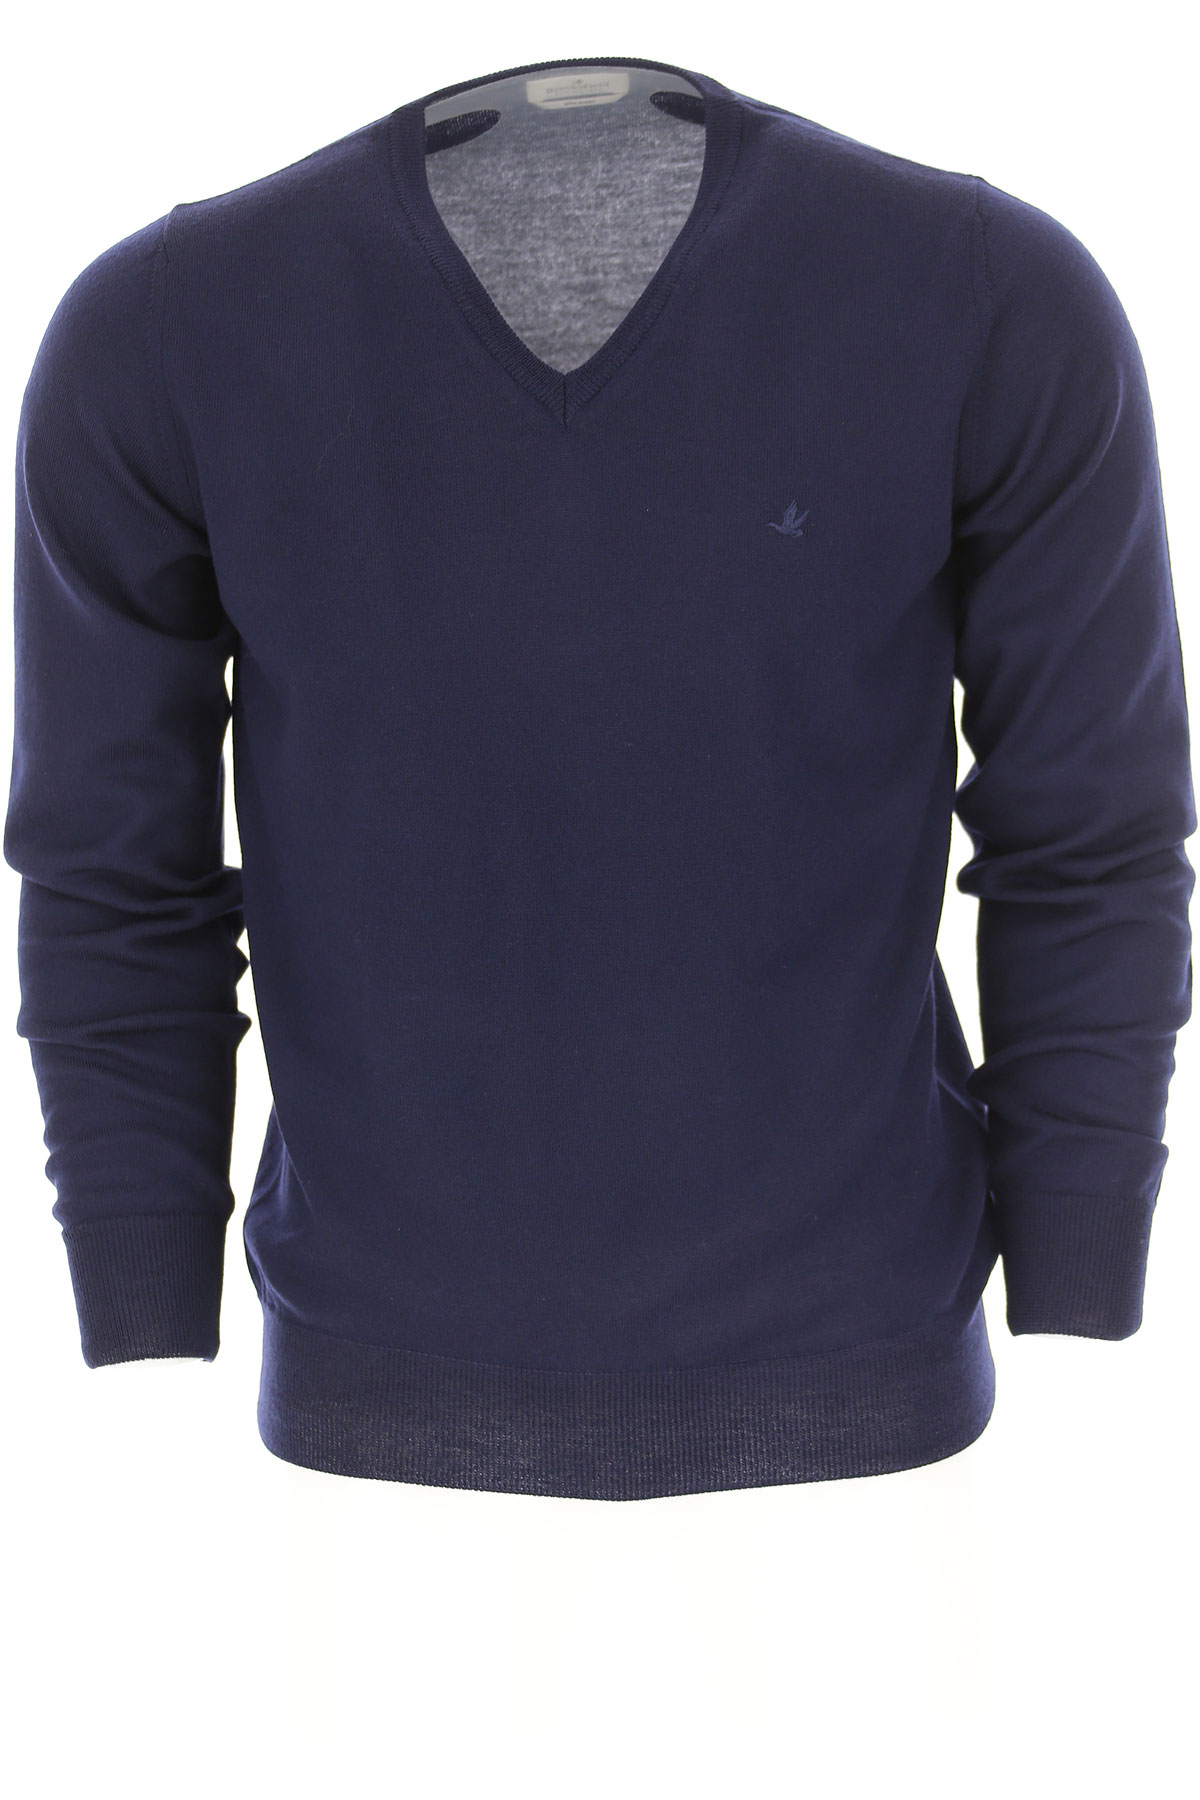 Image of Brooksfield Sweater for Men Jumper, Blue Ink, Virgin wool, 2017, L M XL